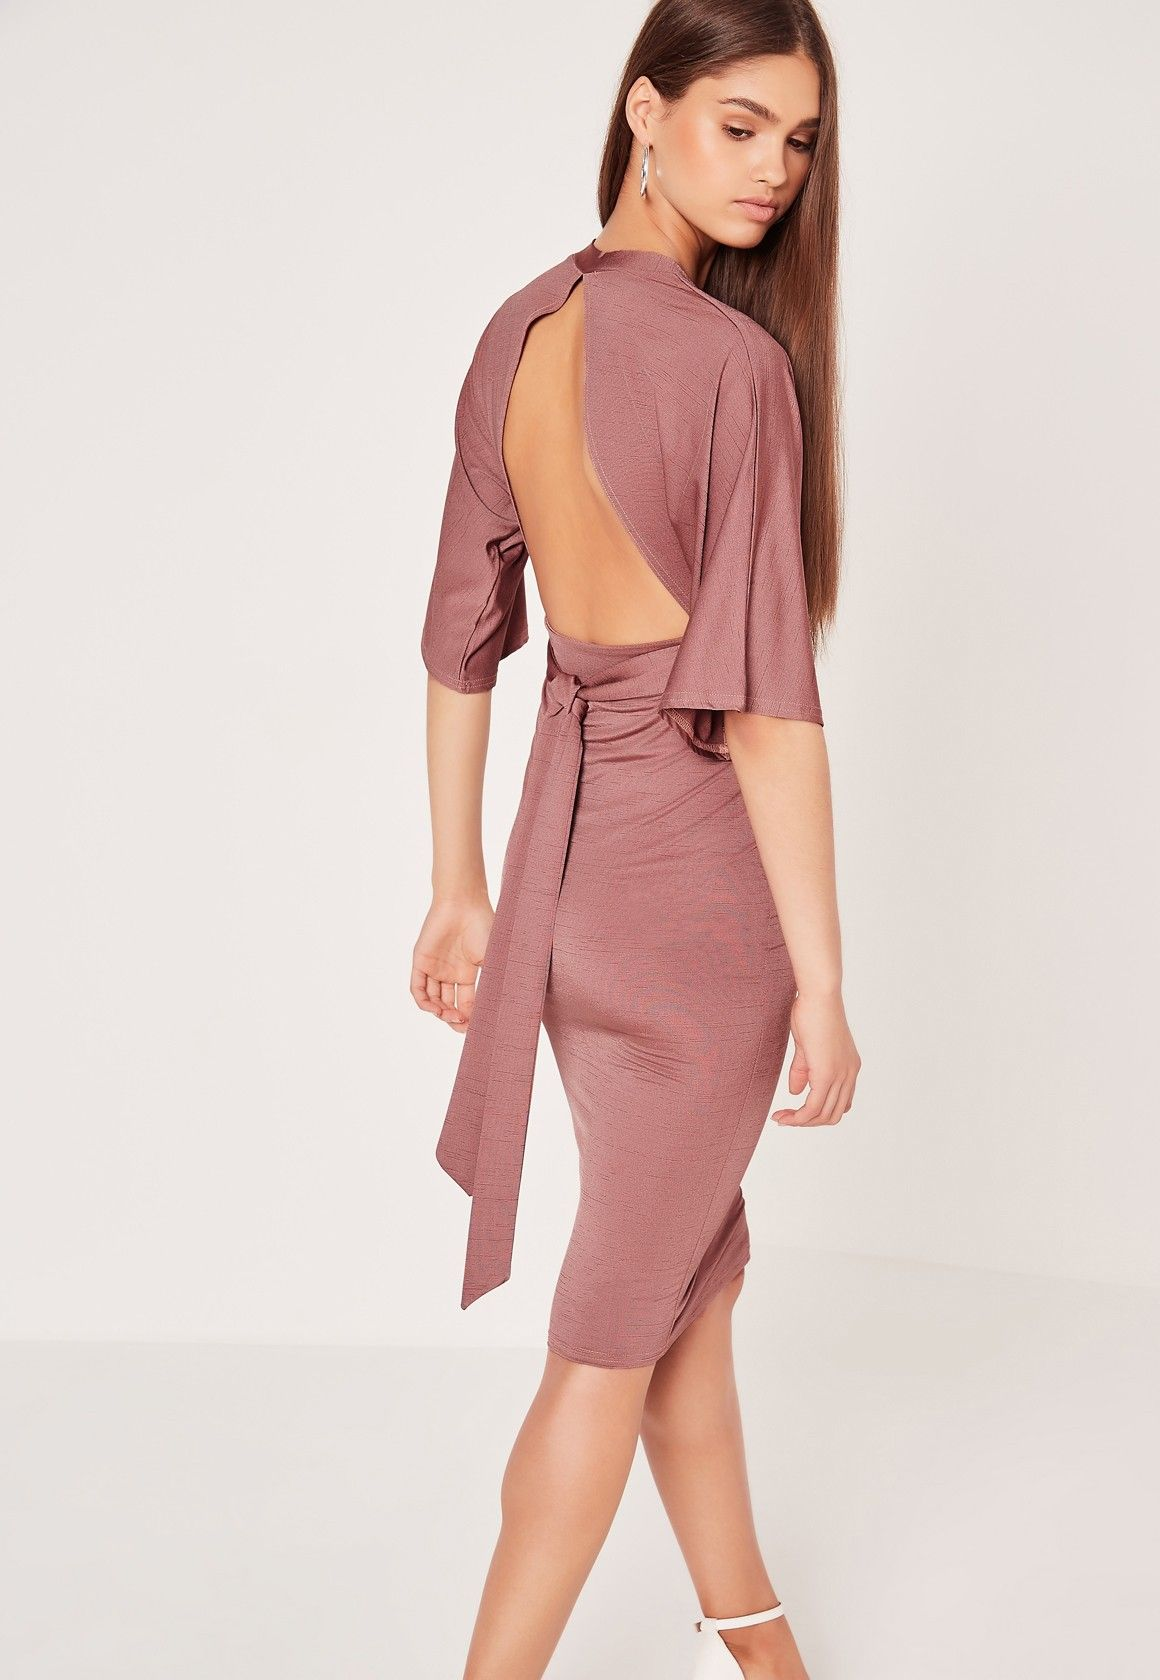 Kimono Sleeve Open Back Midi Dress Pink | Pinterest